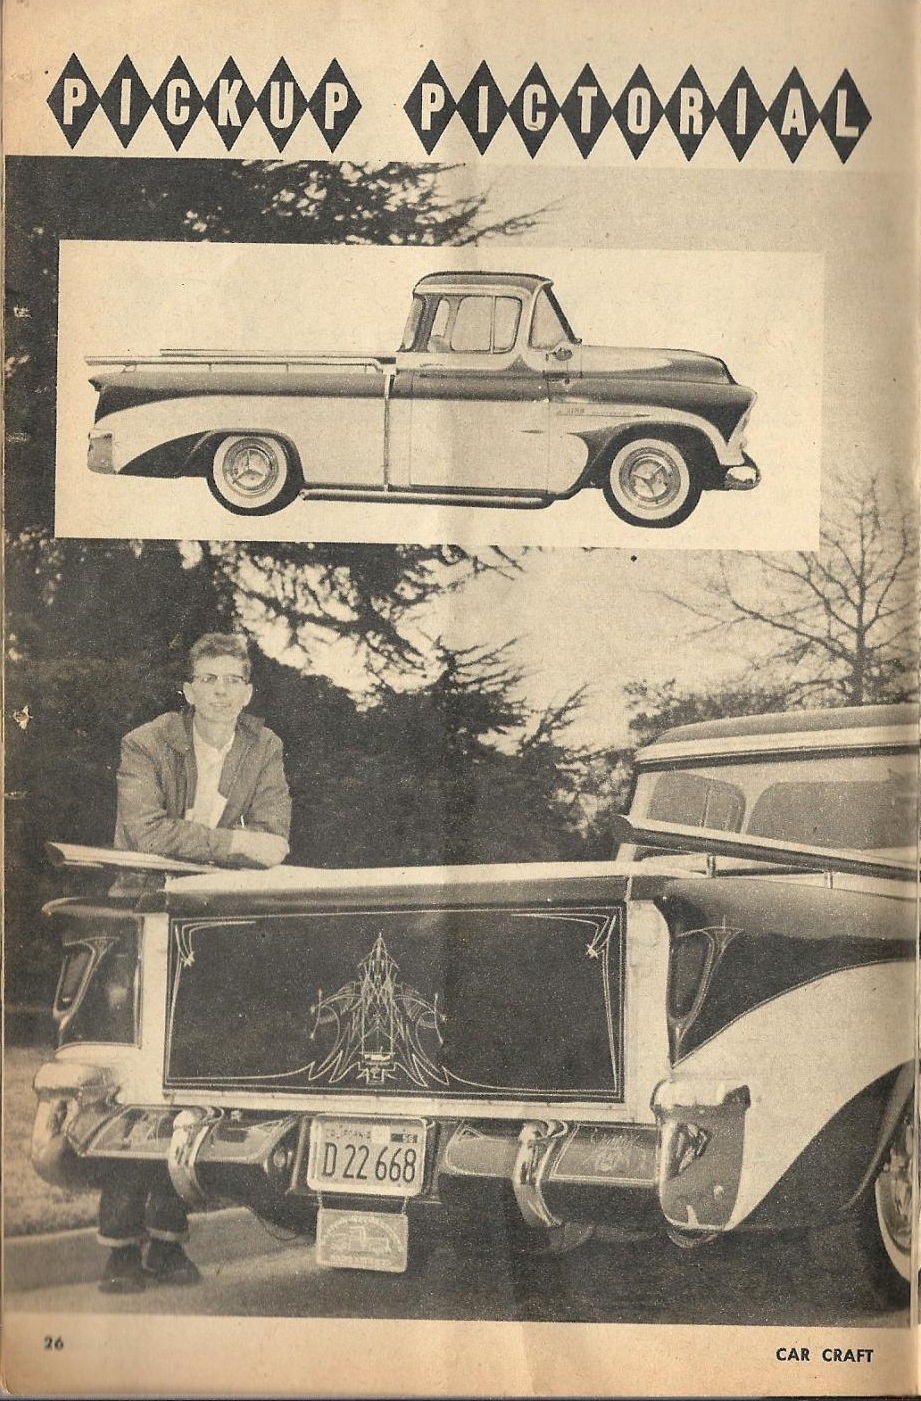 Car Craft - Special Pick Up June 1959 - Pick up Pictorial 2617